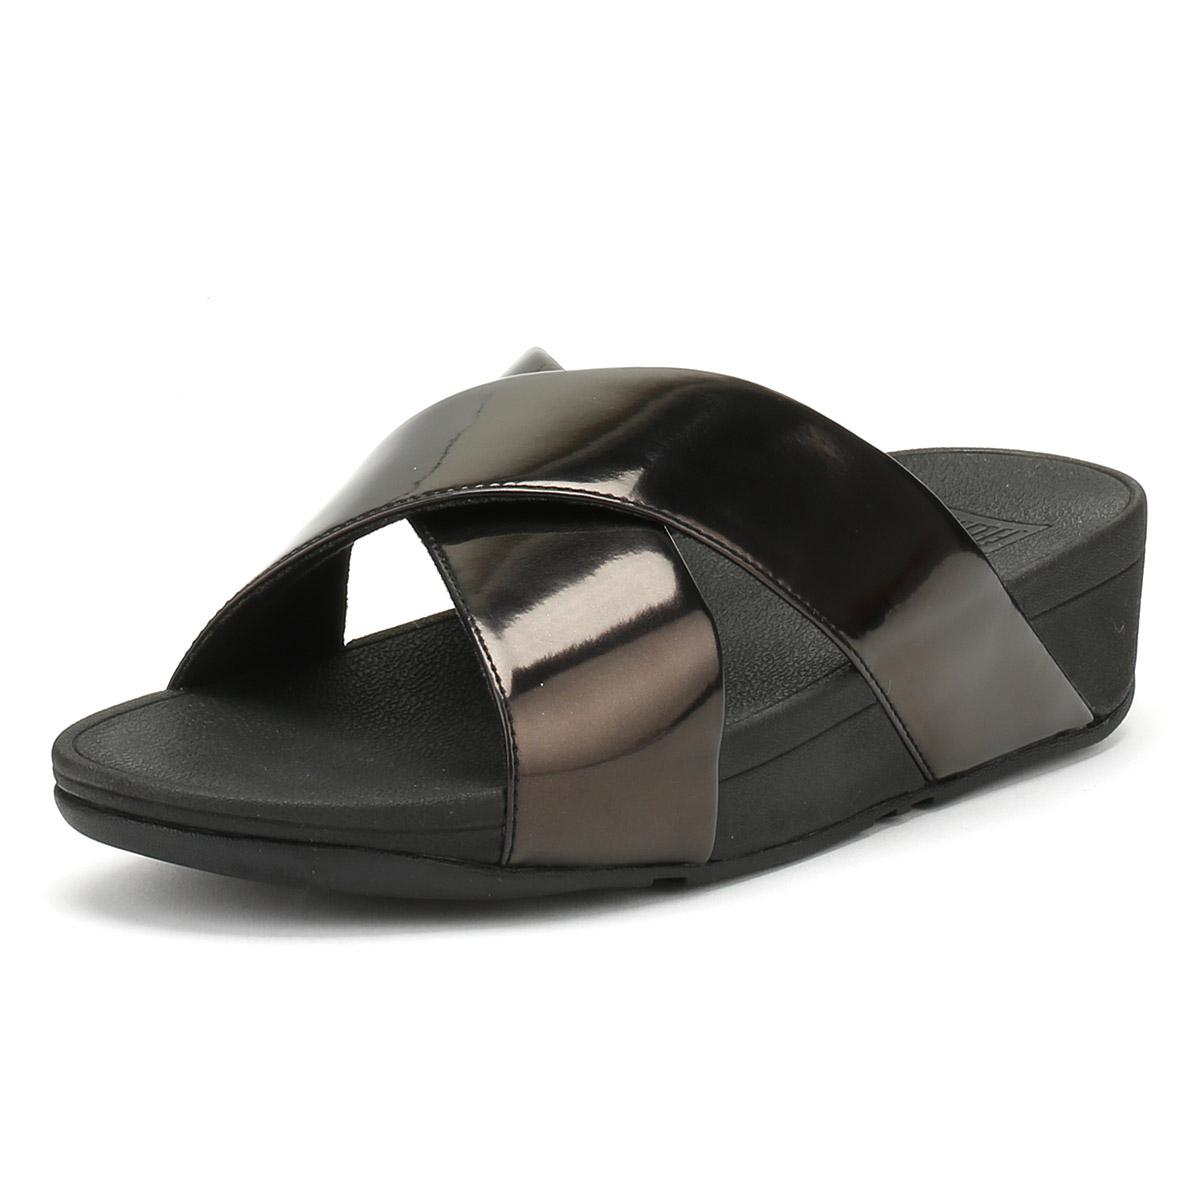 f811d18c283a8 Lyst - Fitflop Womens Black Mirror Lulutm Cross Slide Sandals in Black